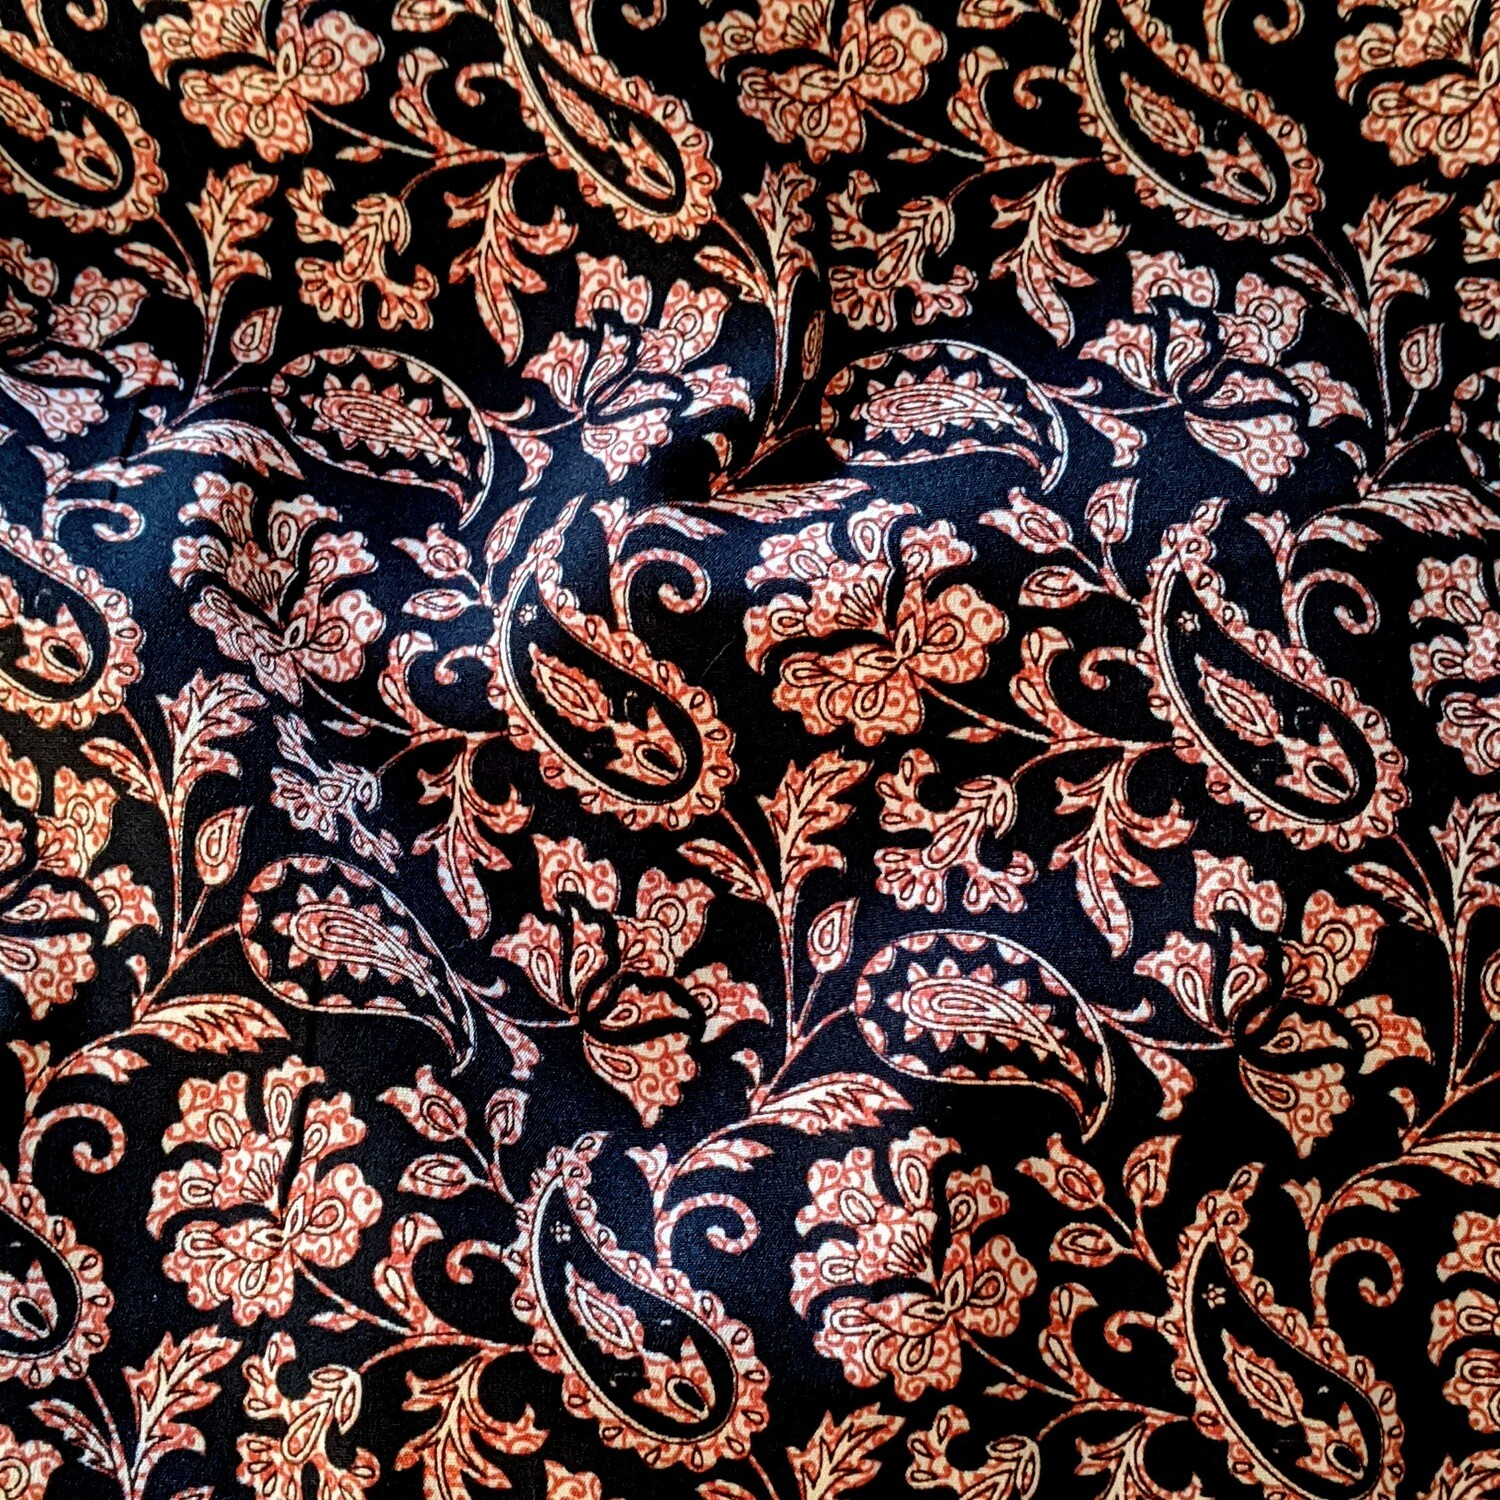 Black Paisley PJ Bottoms (M/L)